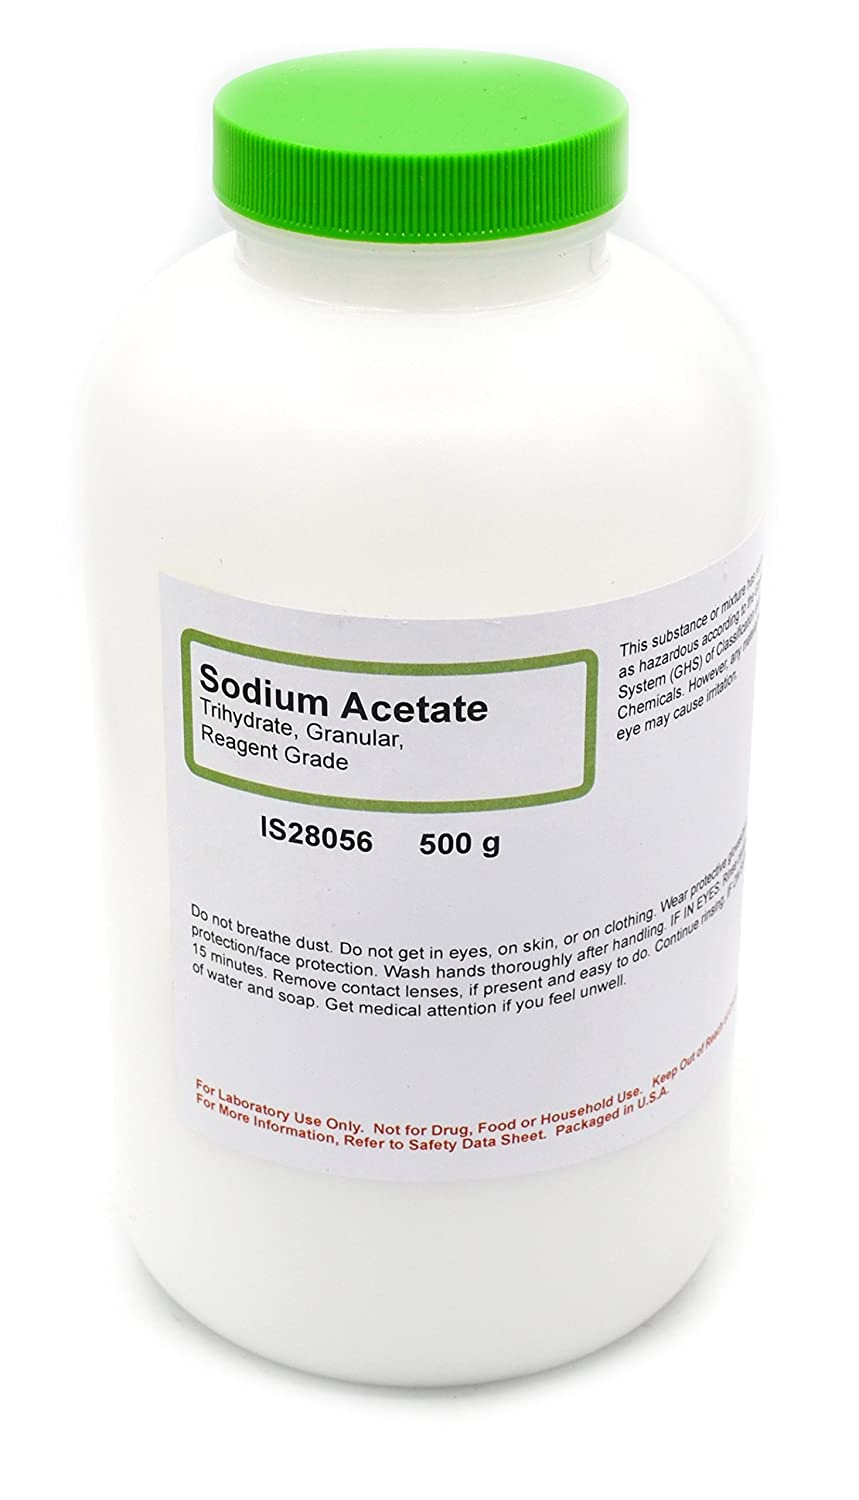 Reagent-Grade Sodium Acetate Trihydrate, 500g - The Curated Chemical Collection